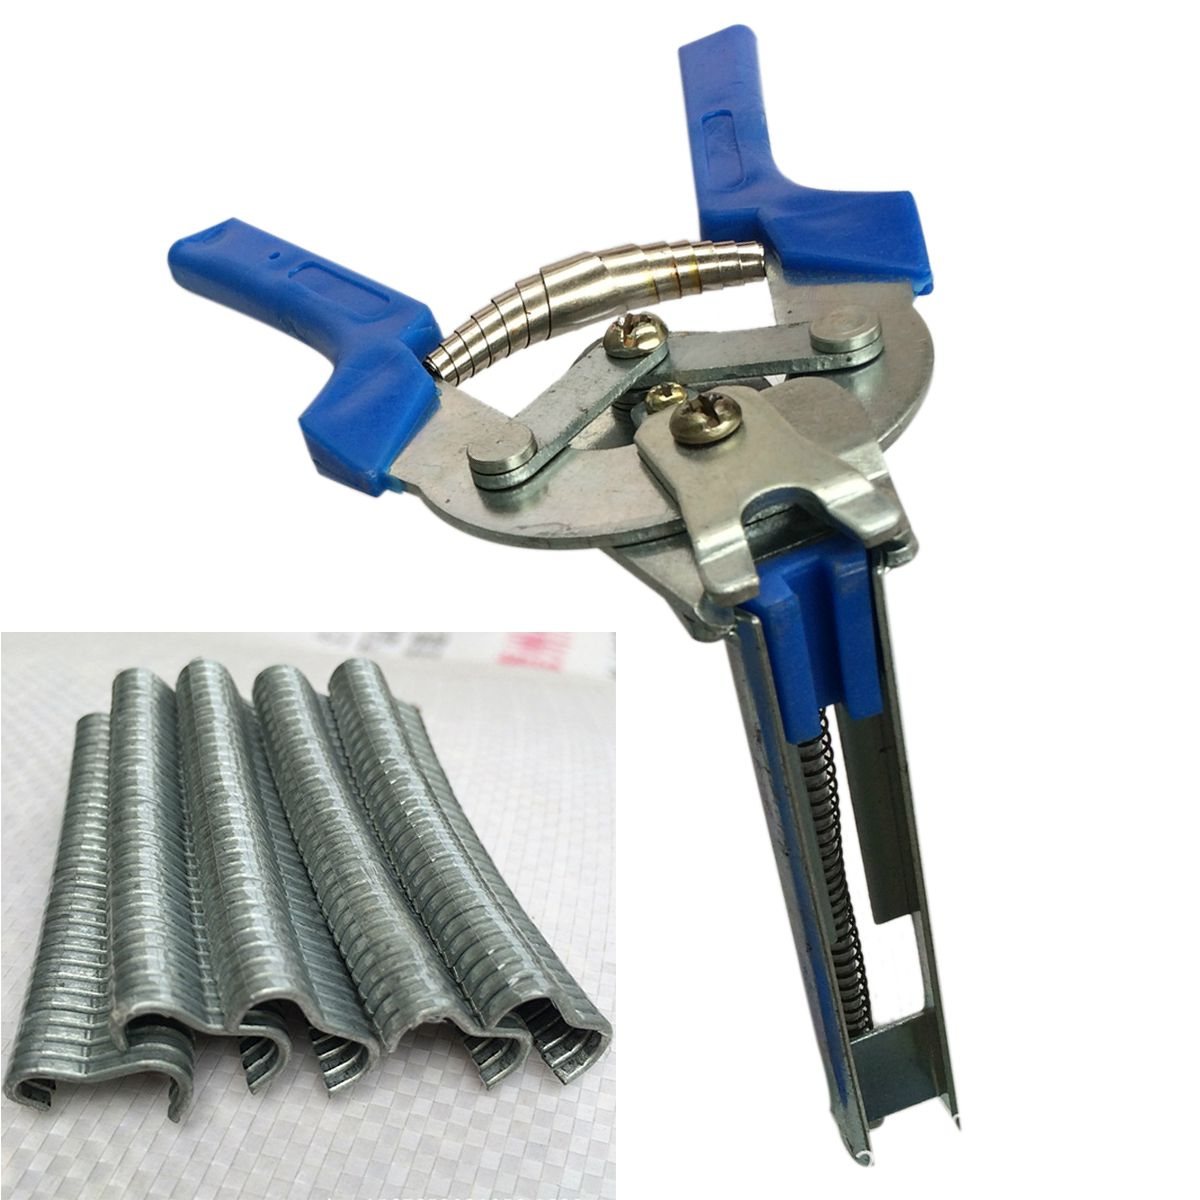 цена на HHO 1pc Hog Ring Plier Tool and 600pcs M Clips Chicken Mesh Cage Wire Fencing Crimping Solder Joint Welding Repair Hand Tools